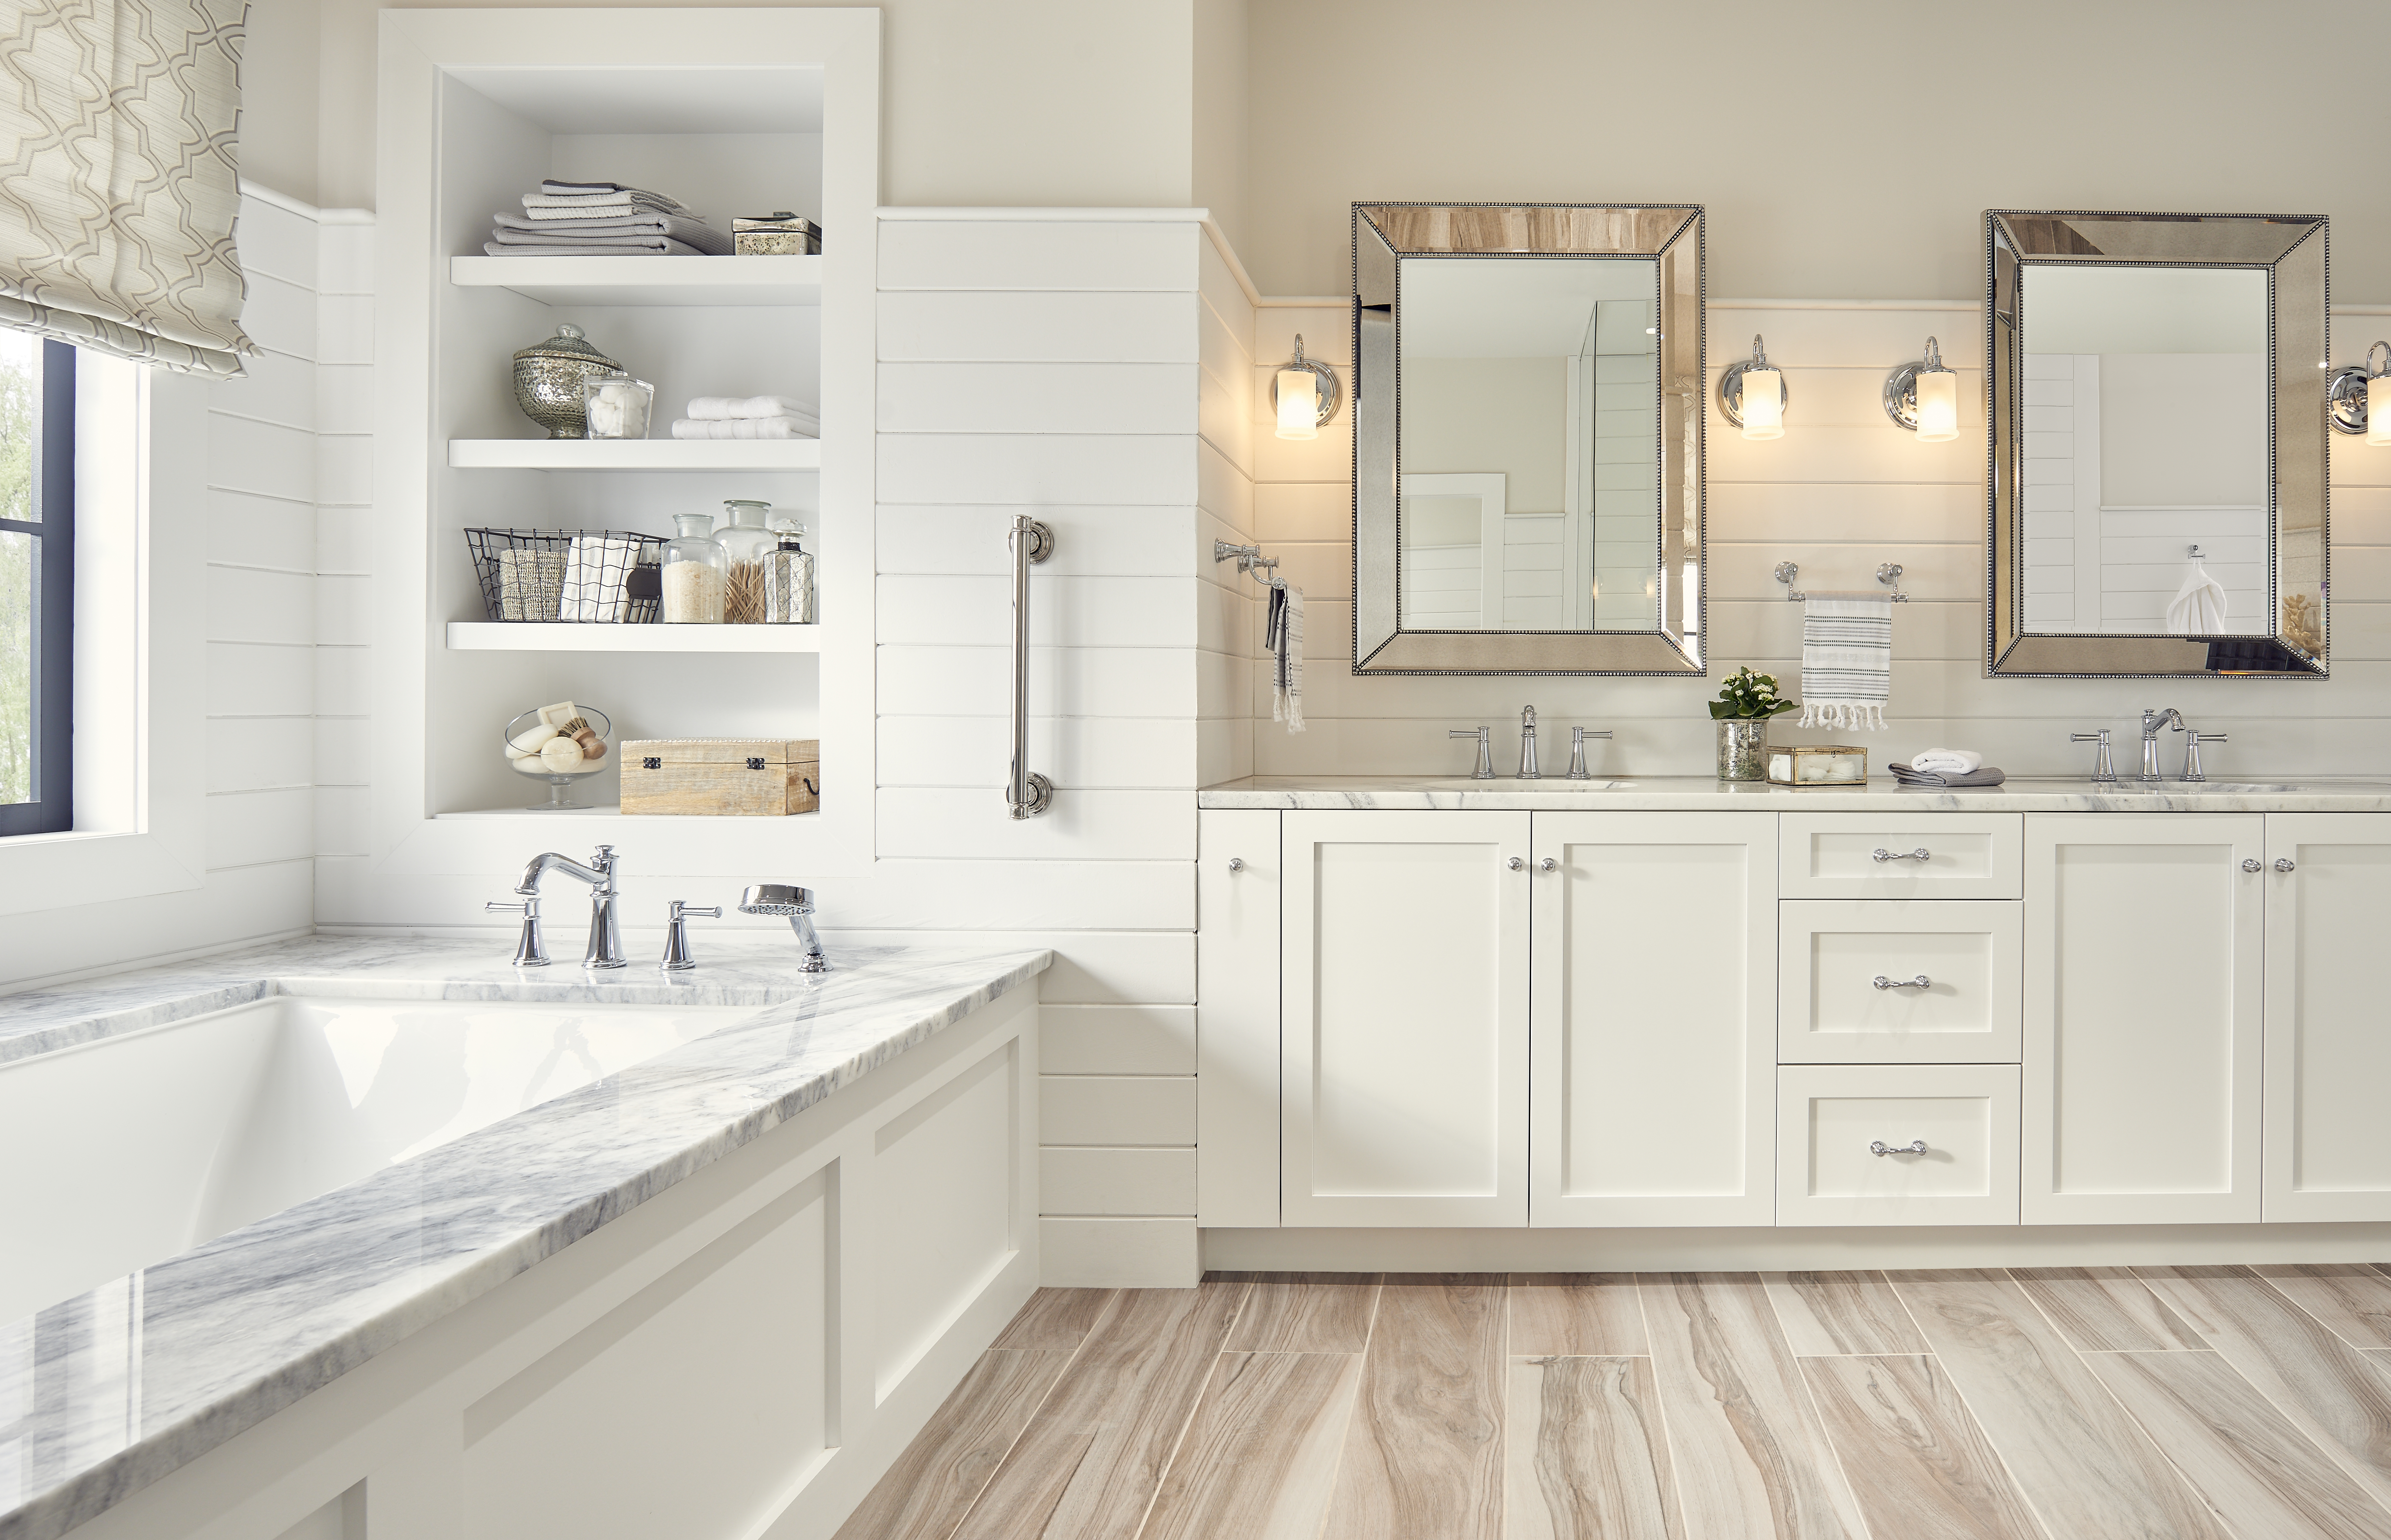 broadway kitchens baths ny read reviews get a bid buildzoom rh buildzoom com broadway kitchens and baths reviews